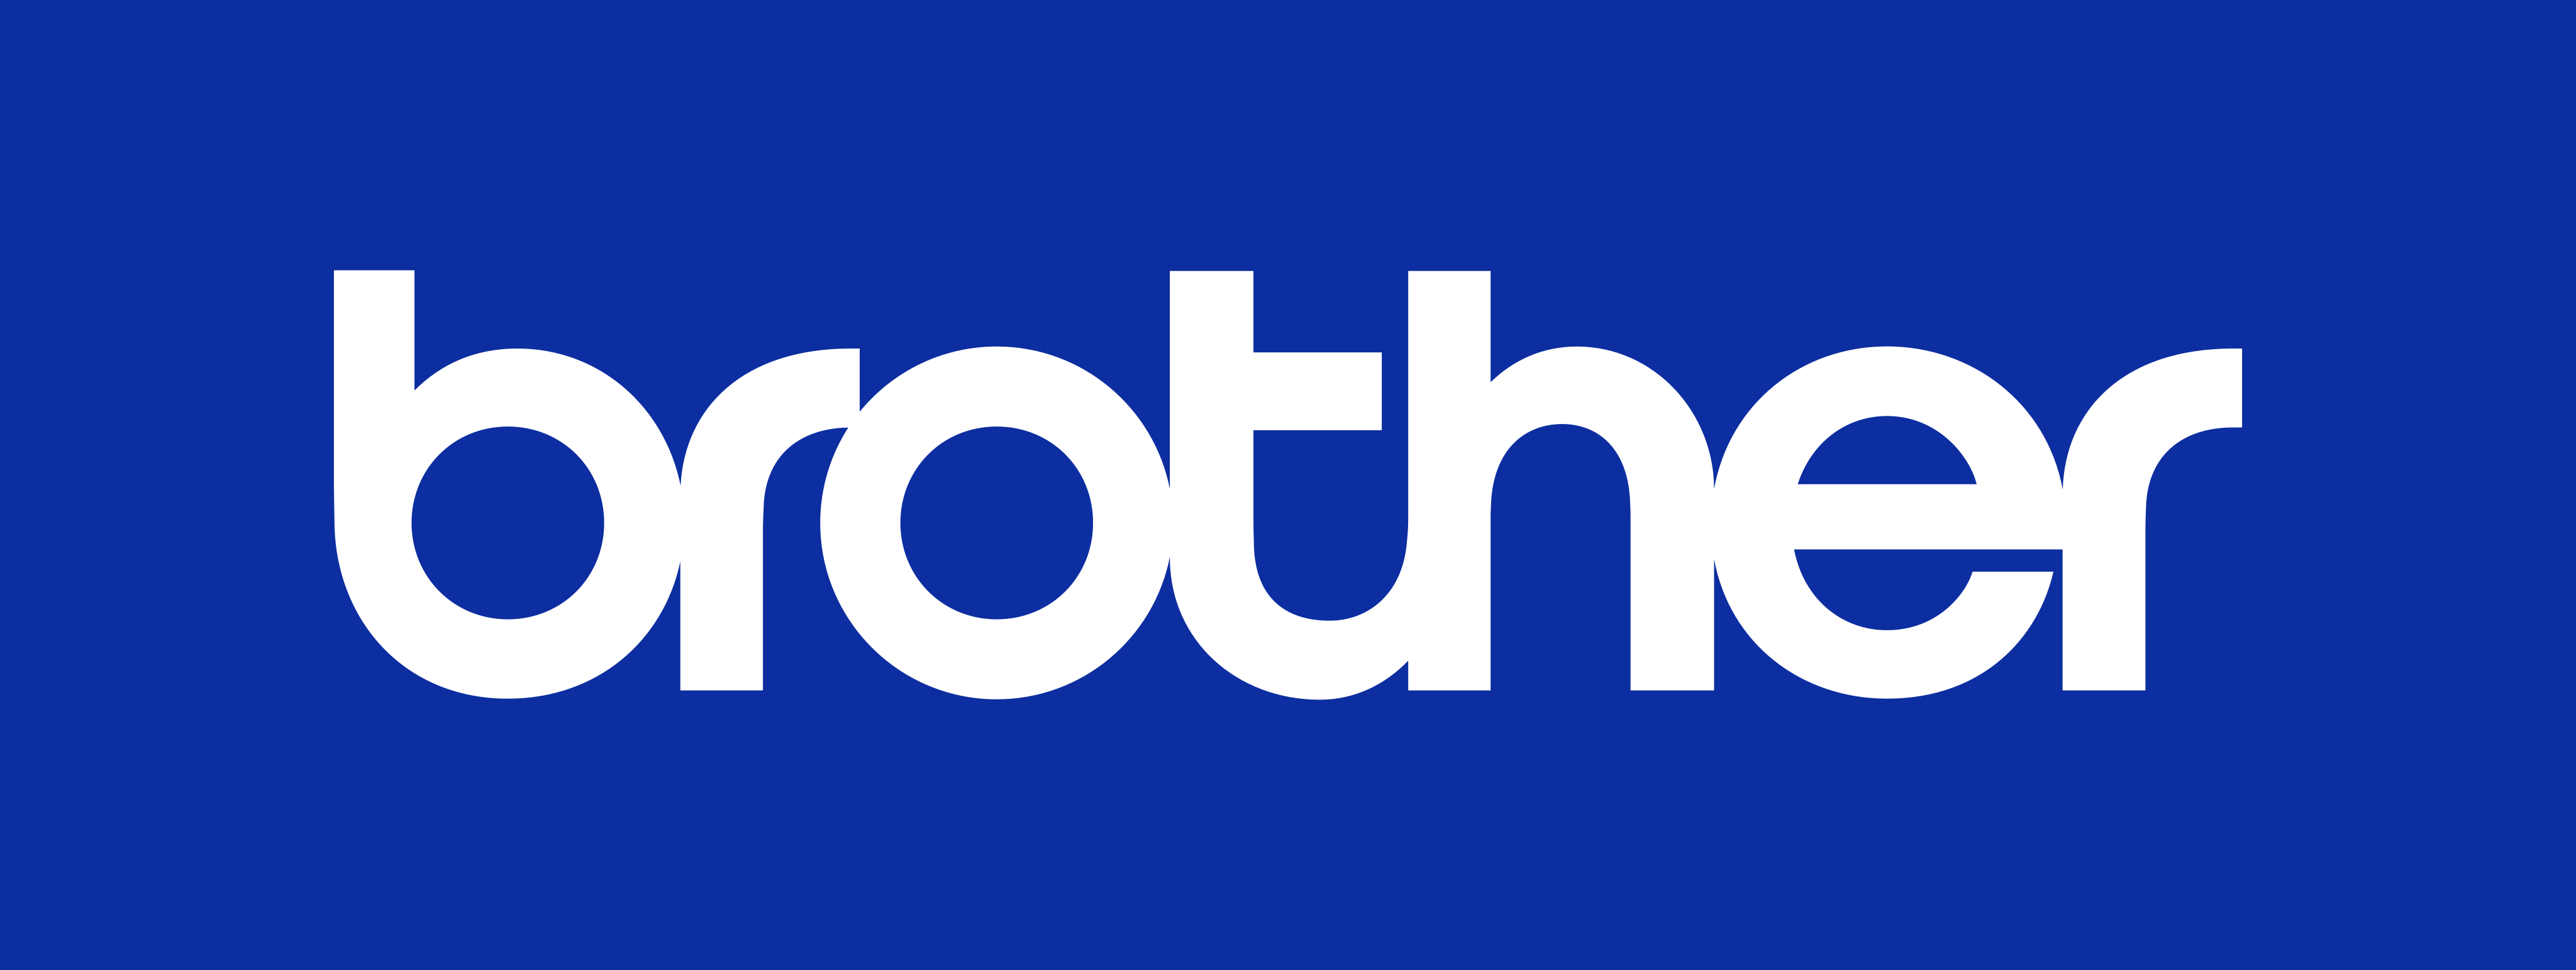 brother logo 4 - Brother Logo